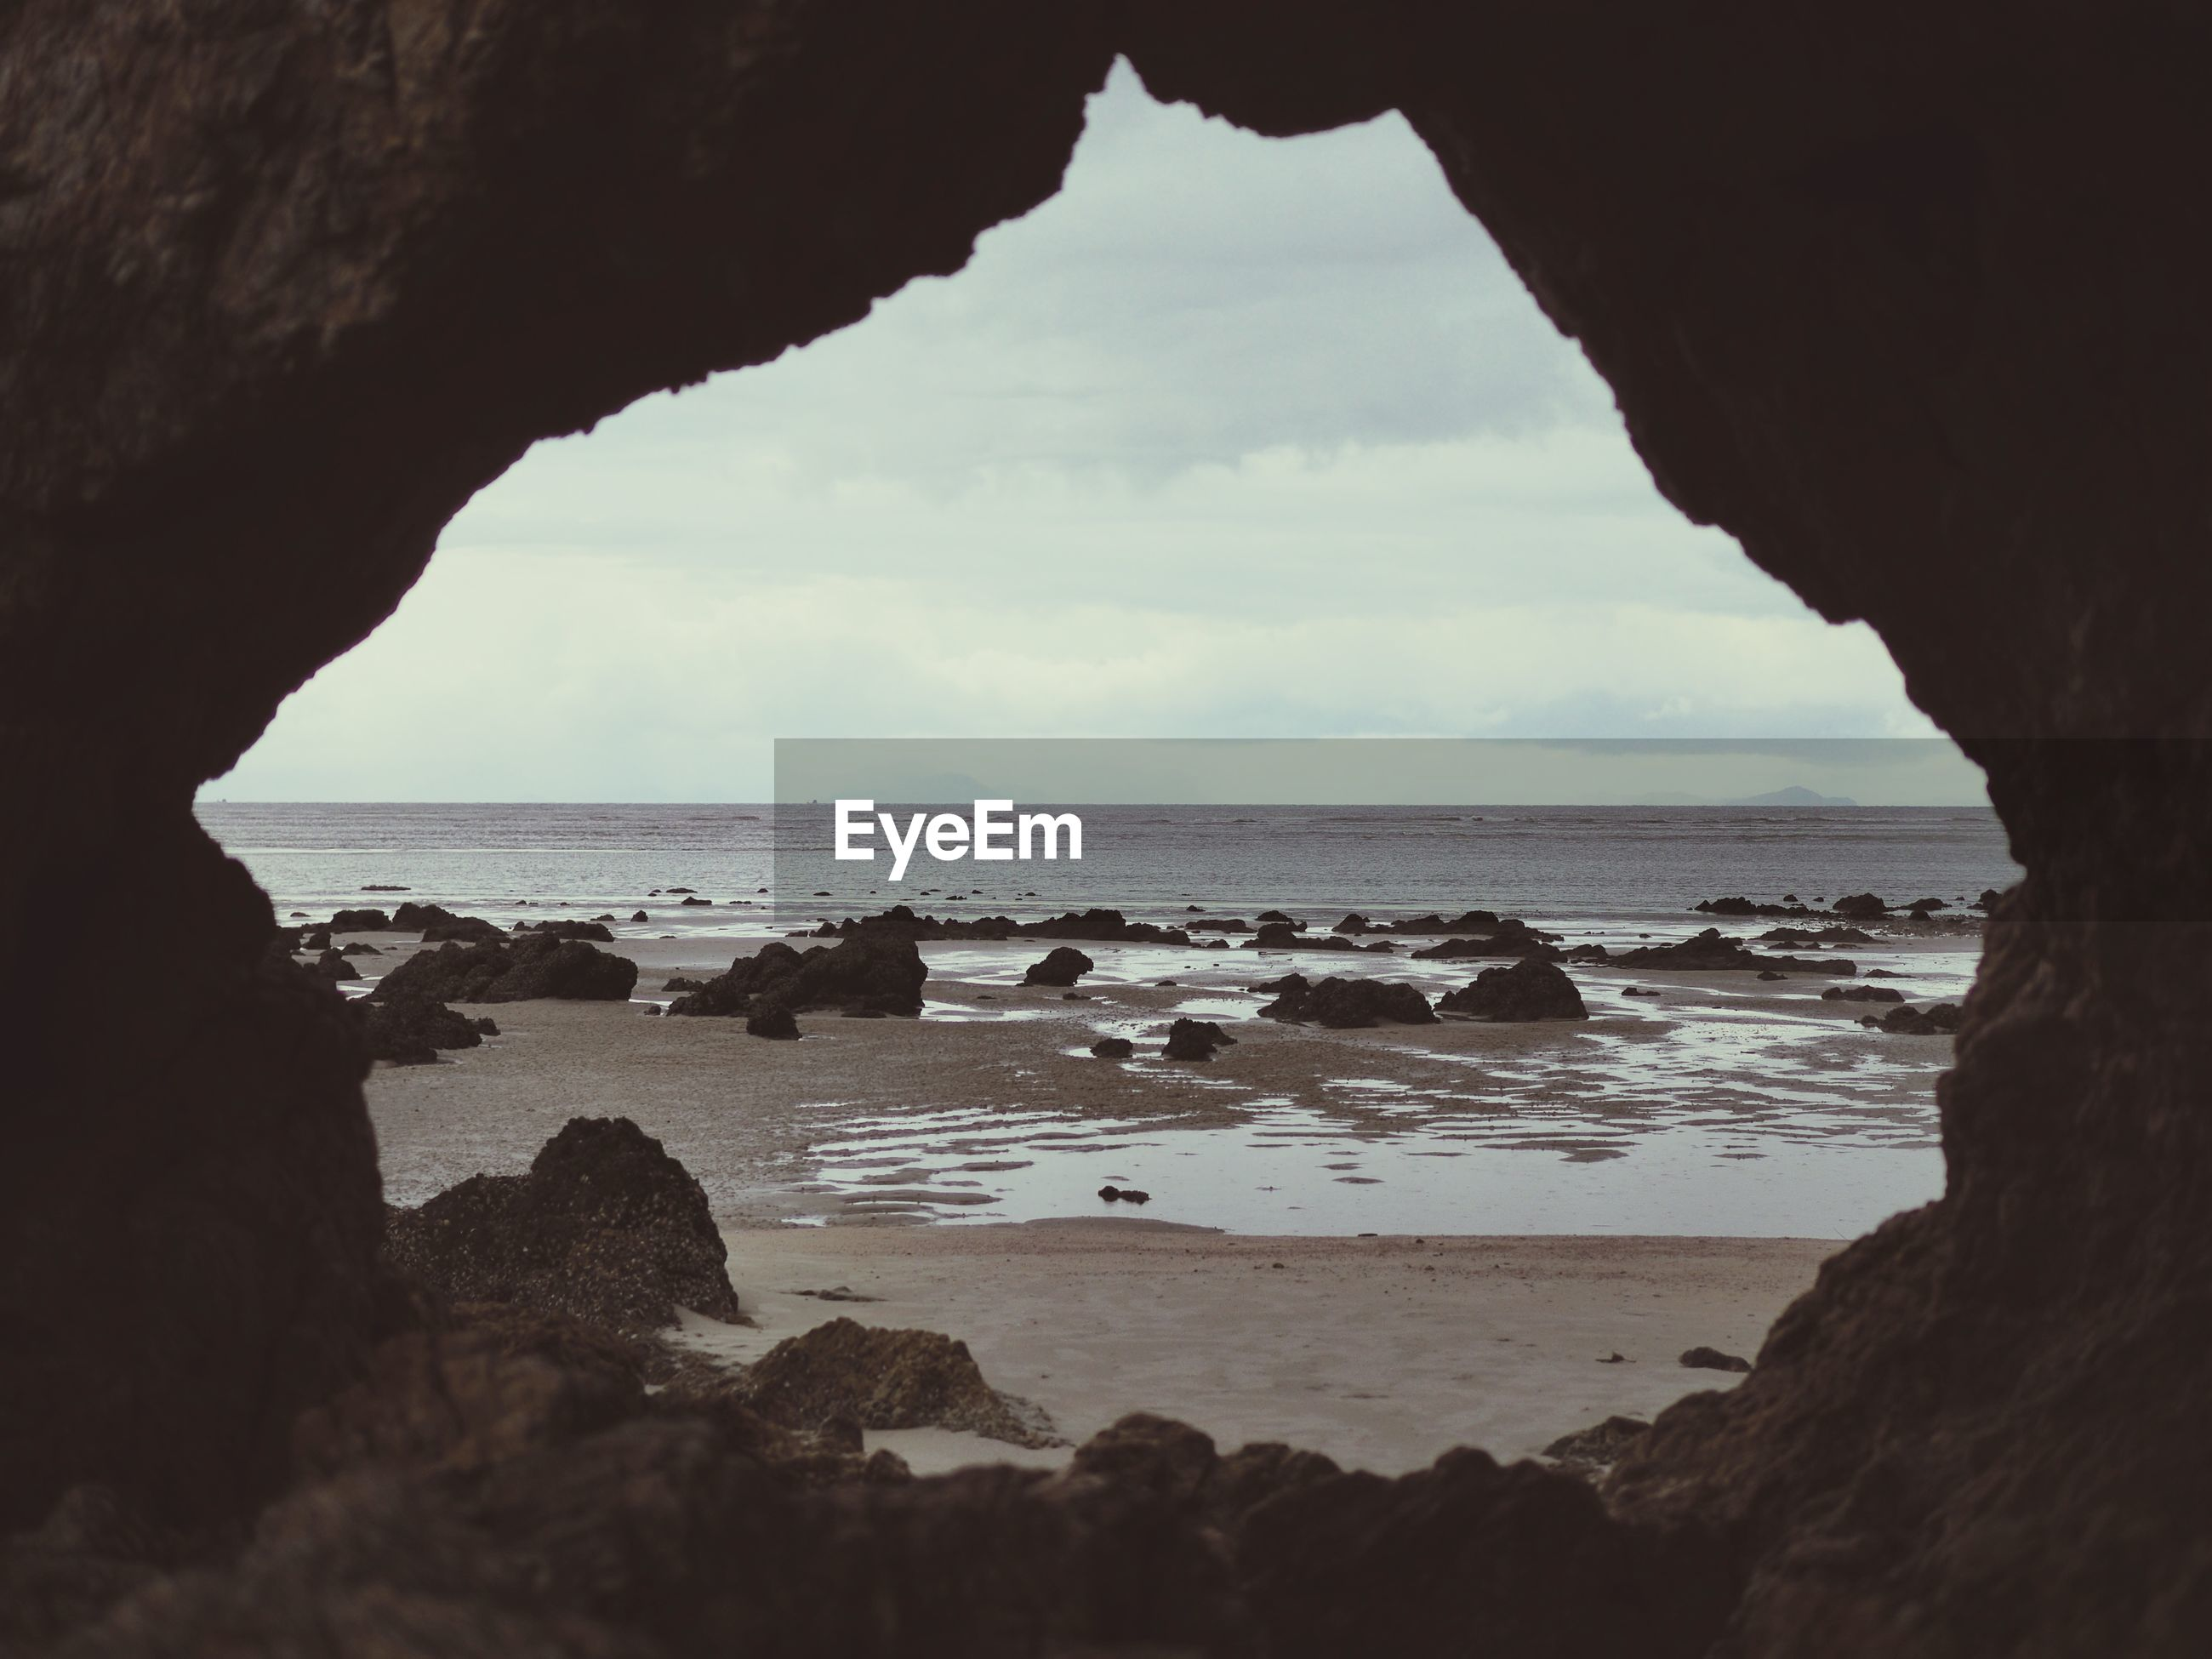 SCENIC VIEW OF SEA SEEN THROUGH ROCK FORMATION